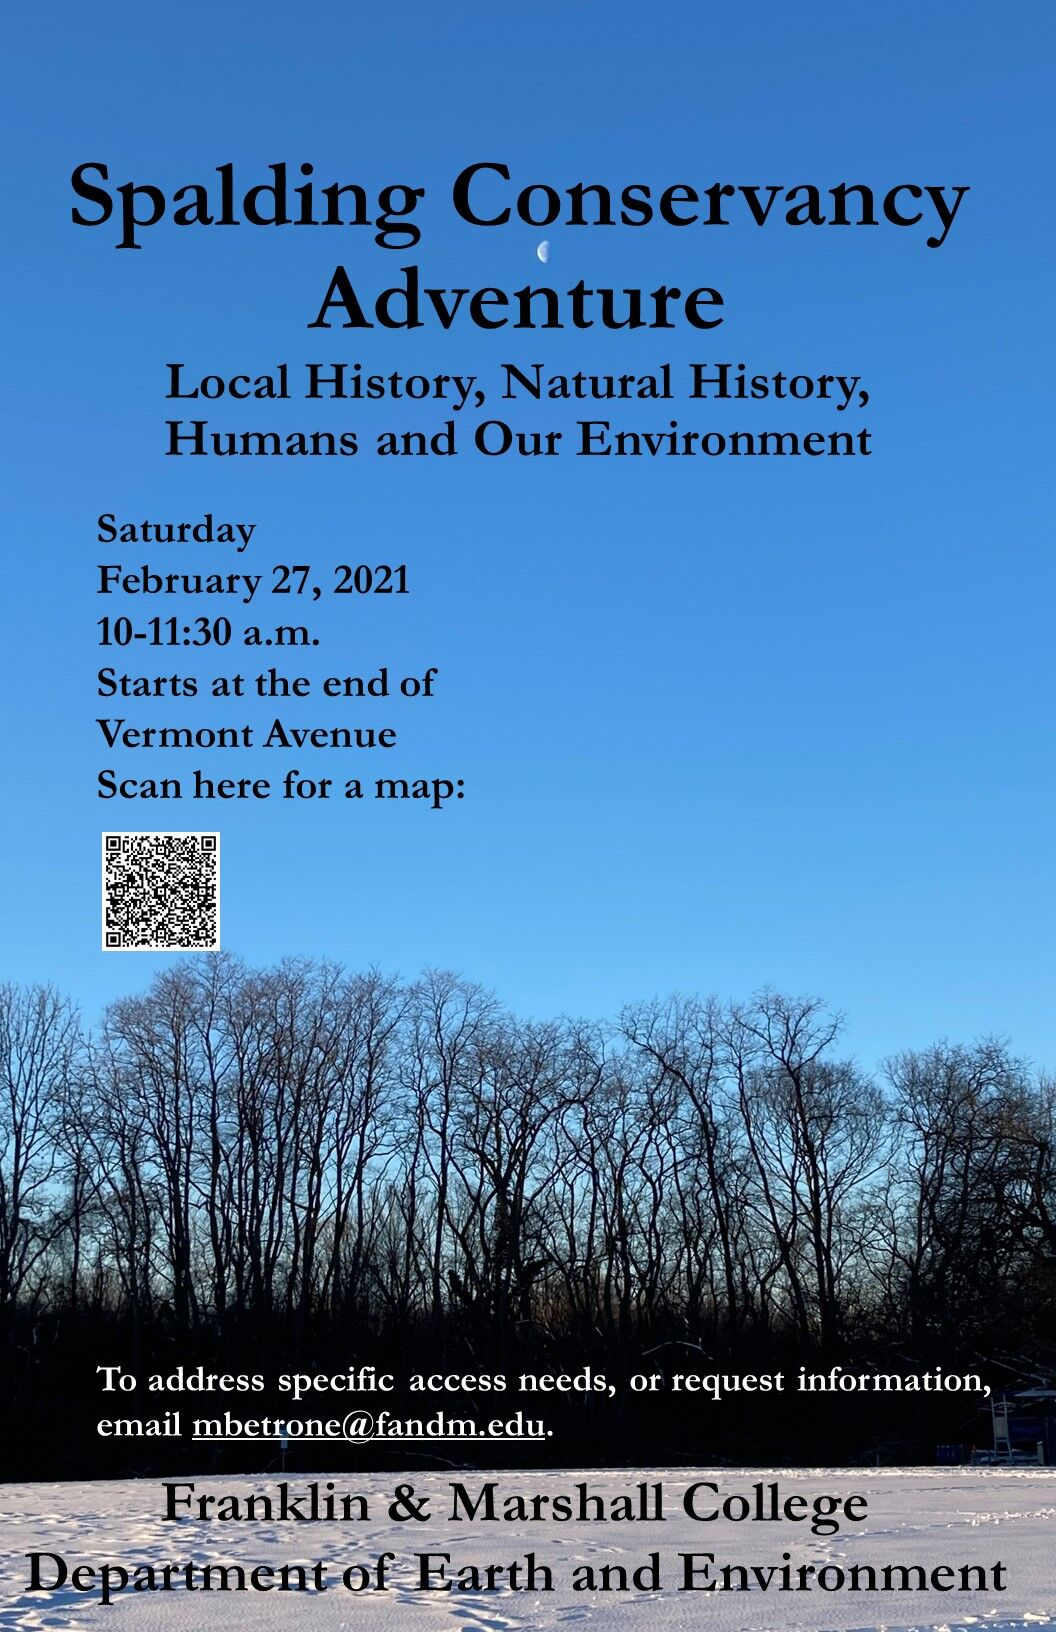 Invitation to walk around Spalding Conservancy on Saturday, Feb. 27, from 10-11:30am. Meet at the end of Vermont Avenue. For access requests, email mbetrone@fandm.edu.